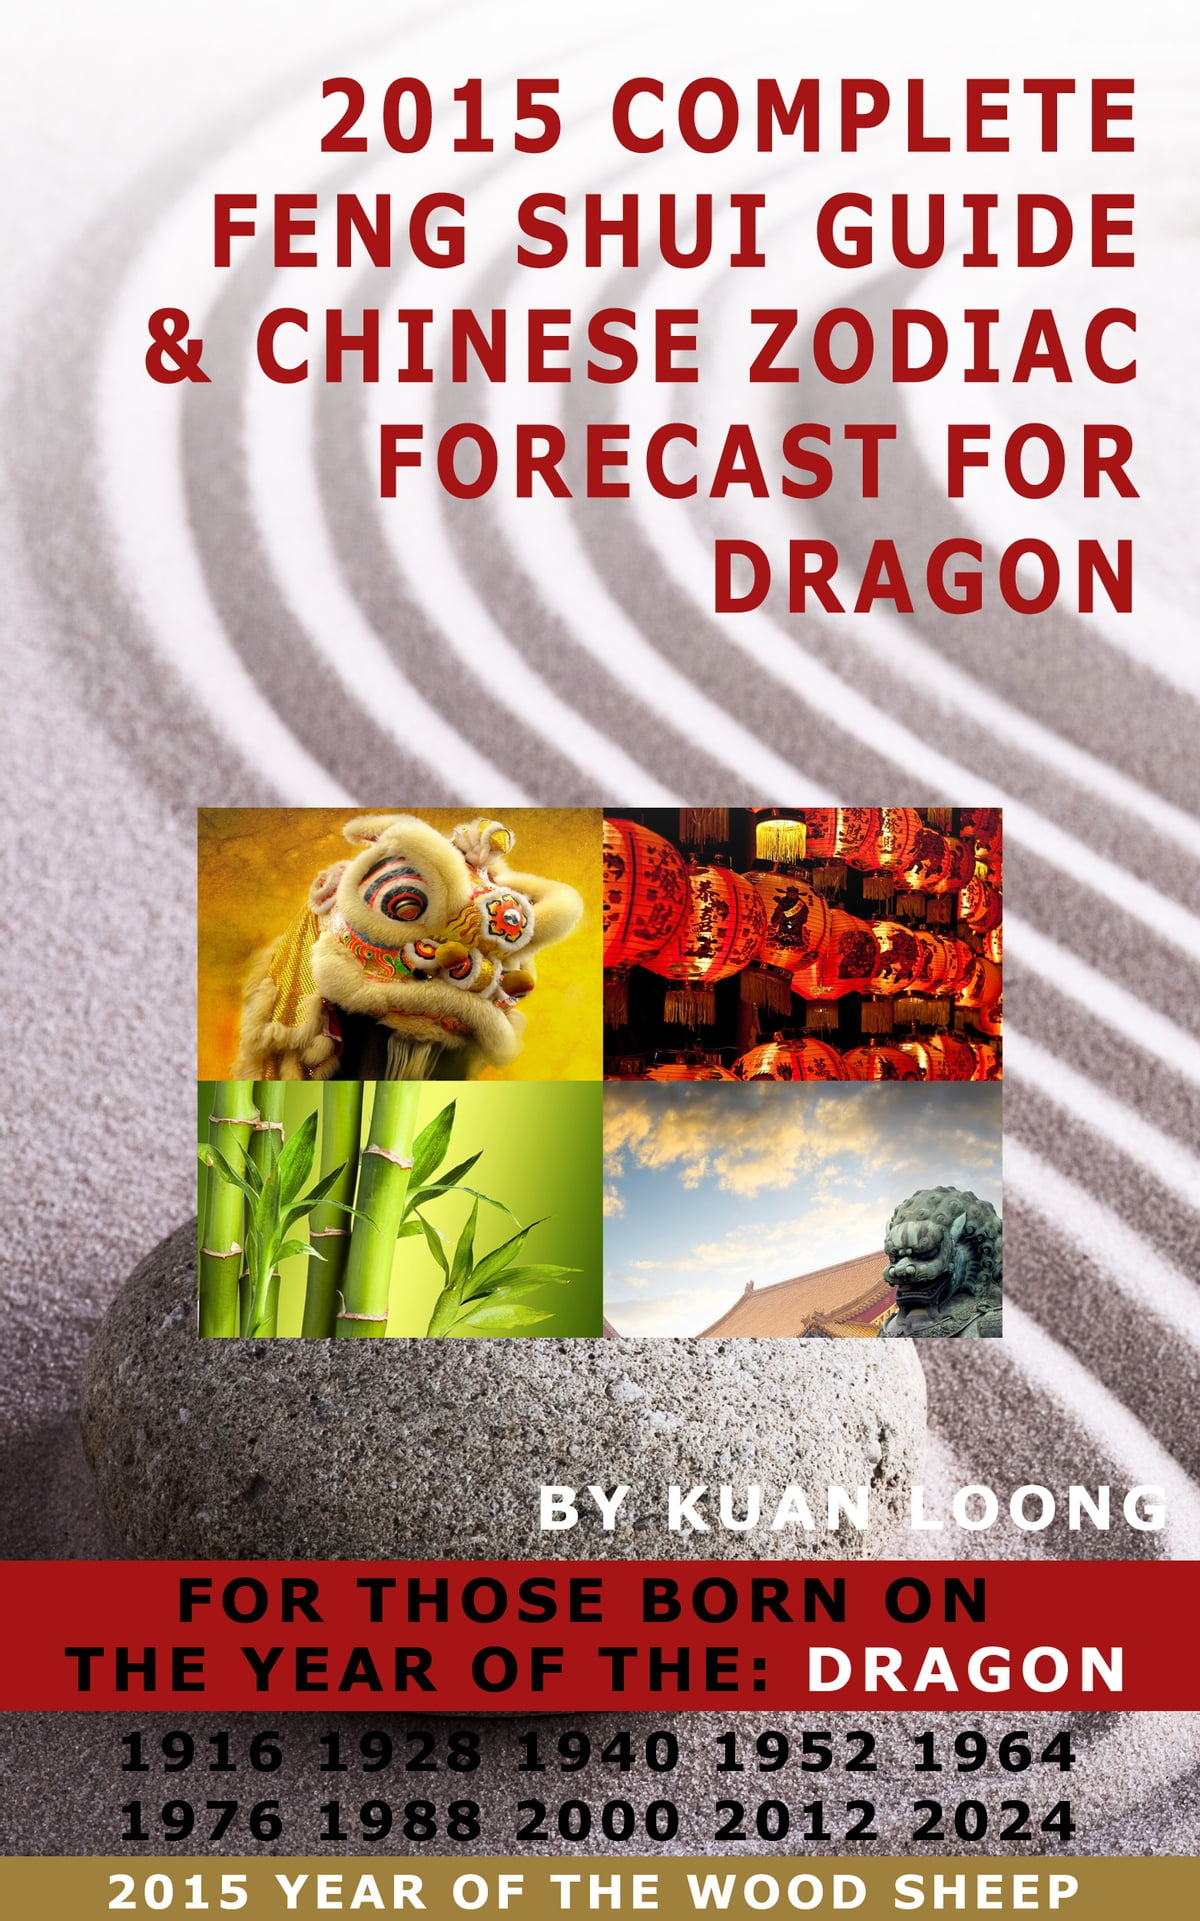 2015 Complete Feng Shui Guide & Chinese Zodiac Forecast for Dragon ebook by  Kuan Loong - Rakuten Kobo